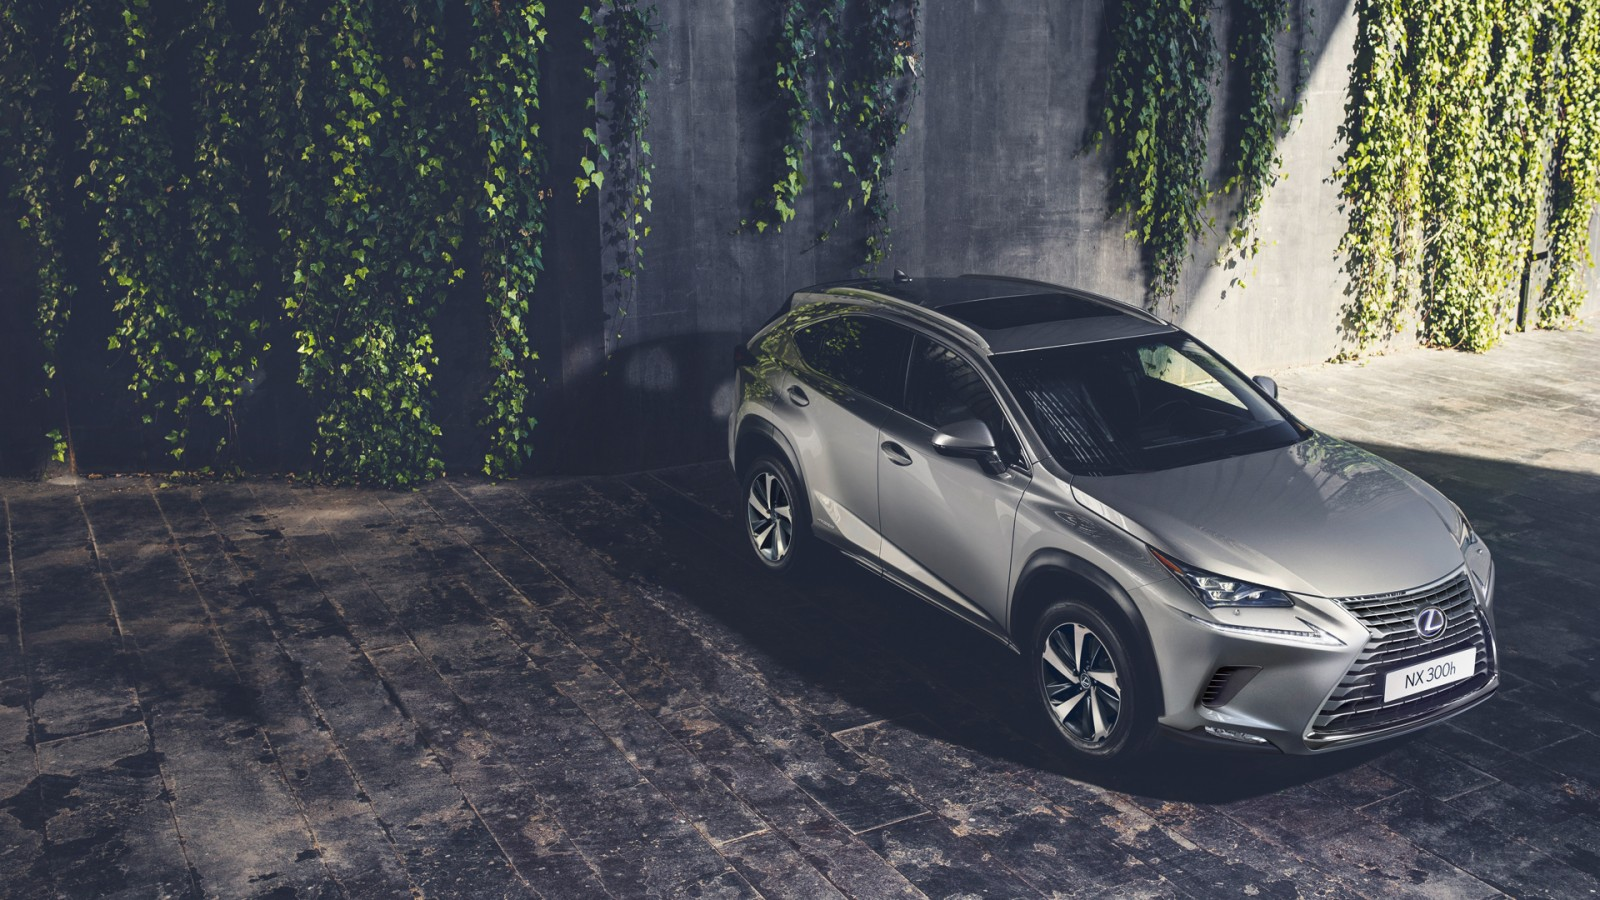 2017 lexus nx 300h luxury crossover wallpaper hd car wallpapers. Black Bedroom Furniture Sets. Home Design Ideas